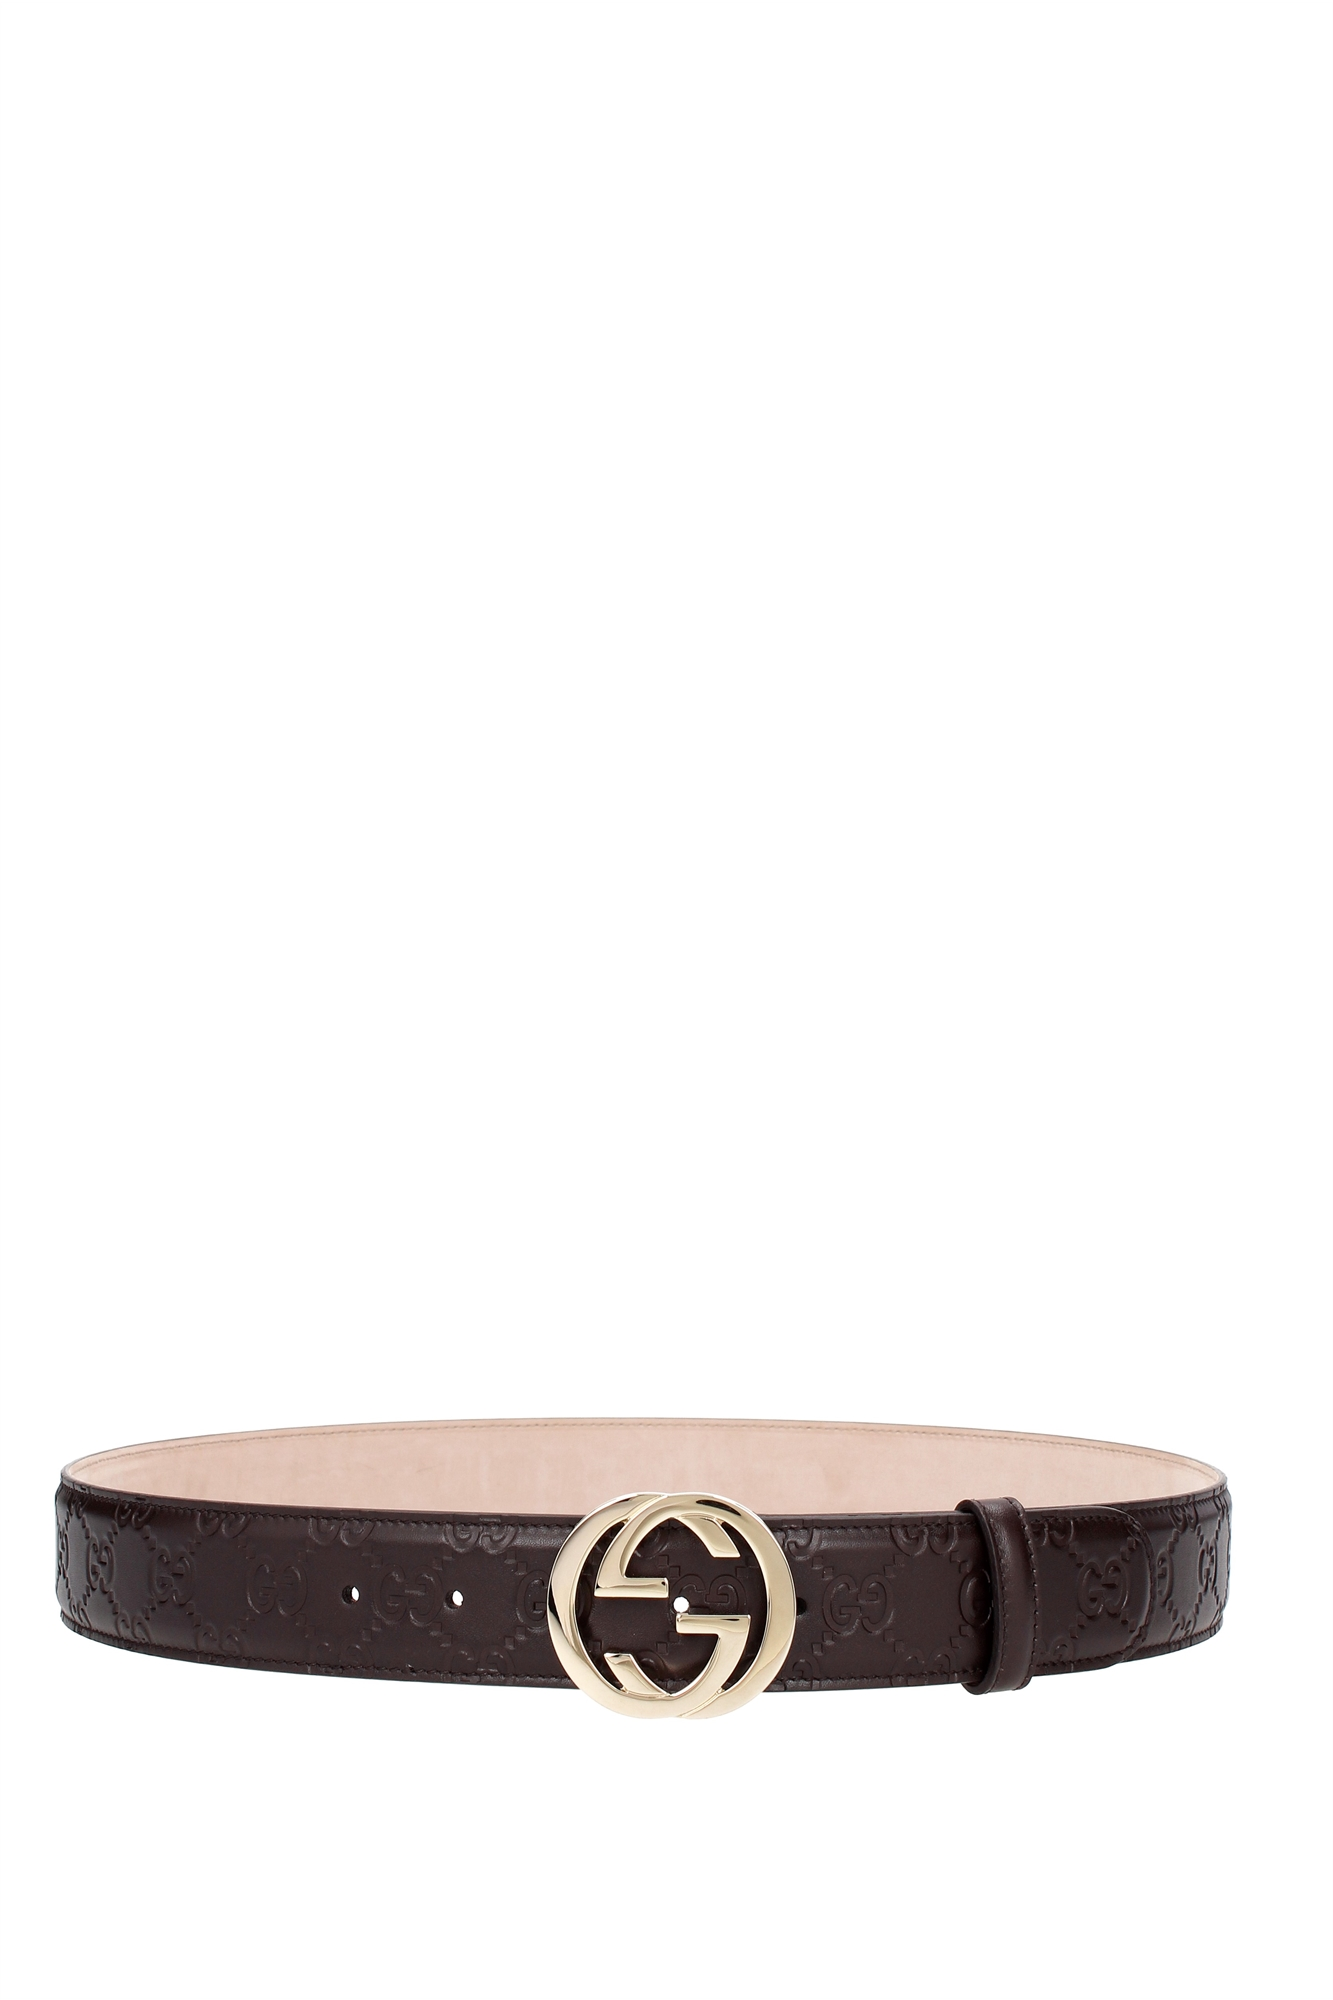 Belts Gucci Women Leather Brown 370543CWC1G2140